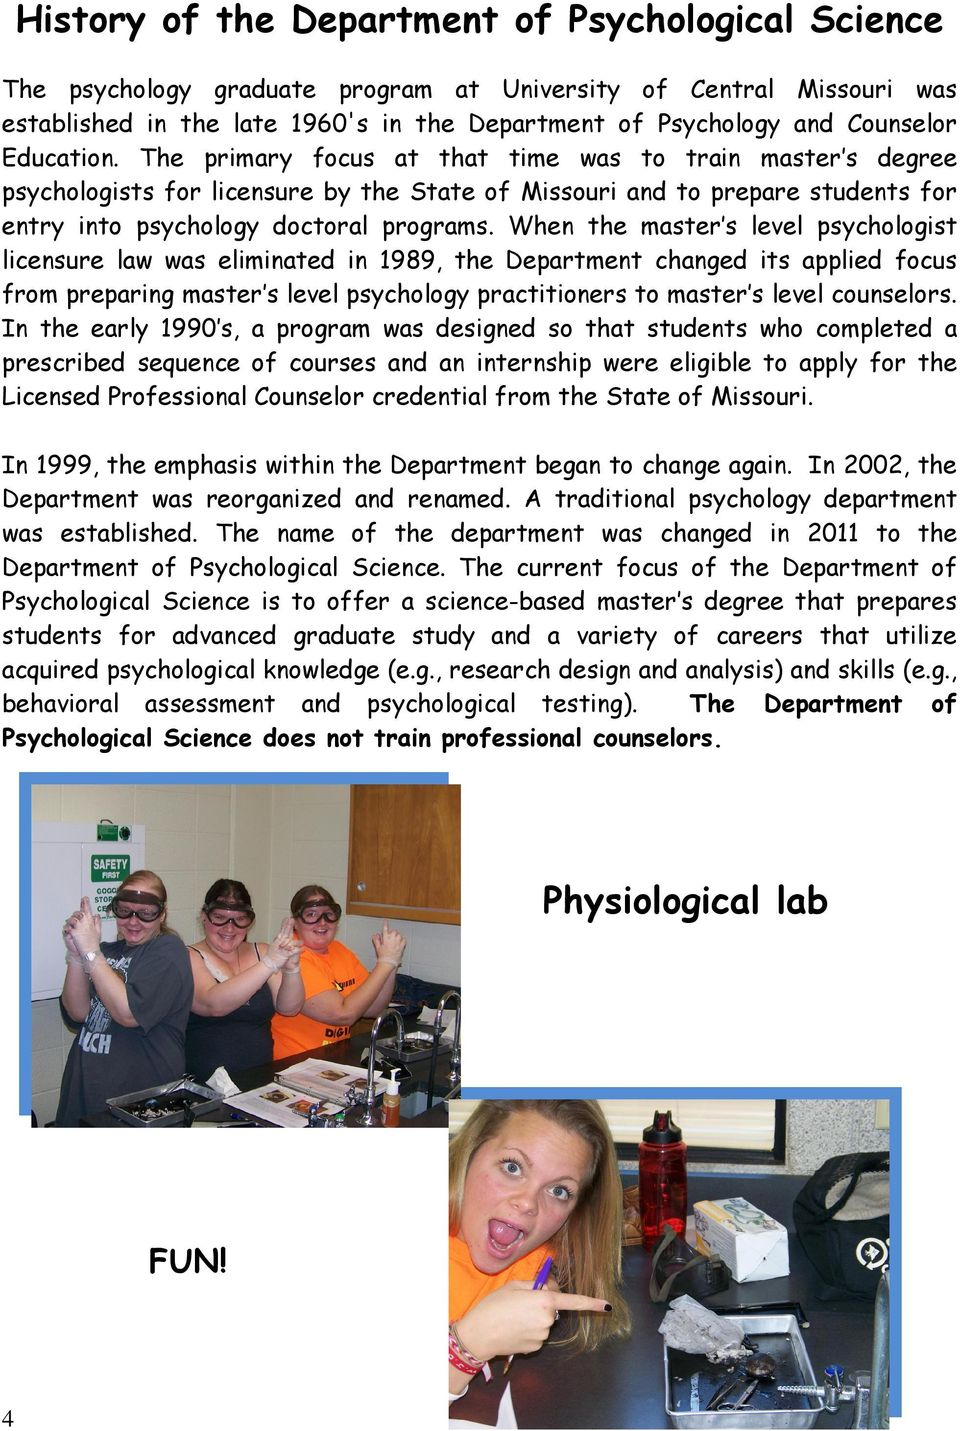 When the master s level psychologist licensure law was eliminated in 1989, the Department changed its applied focus from preparing master s level psychology practitioners to master s level counselors.